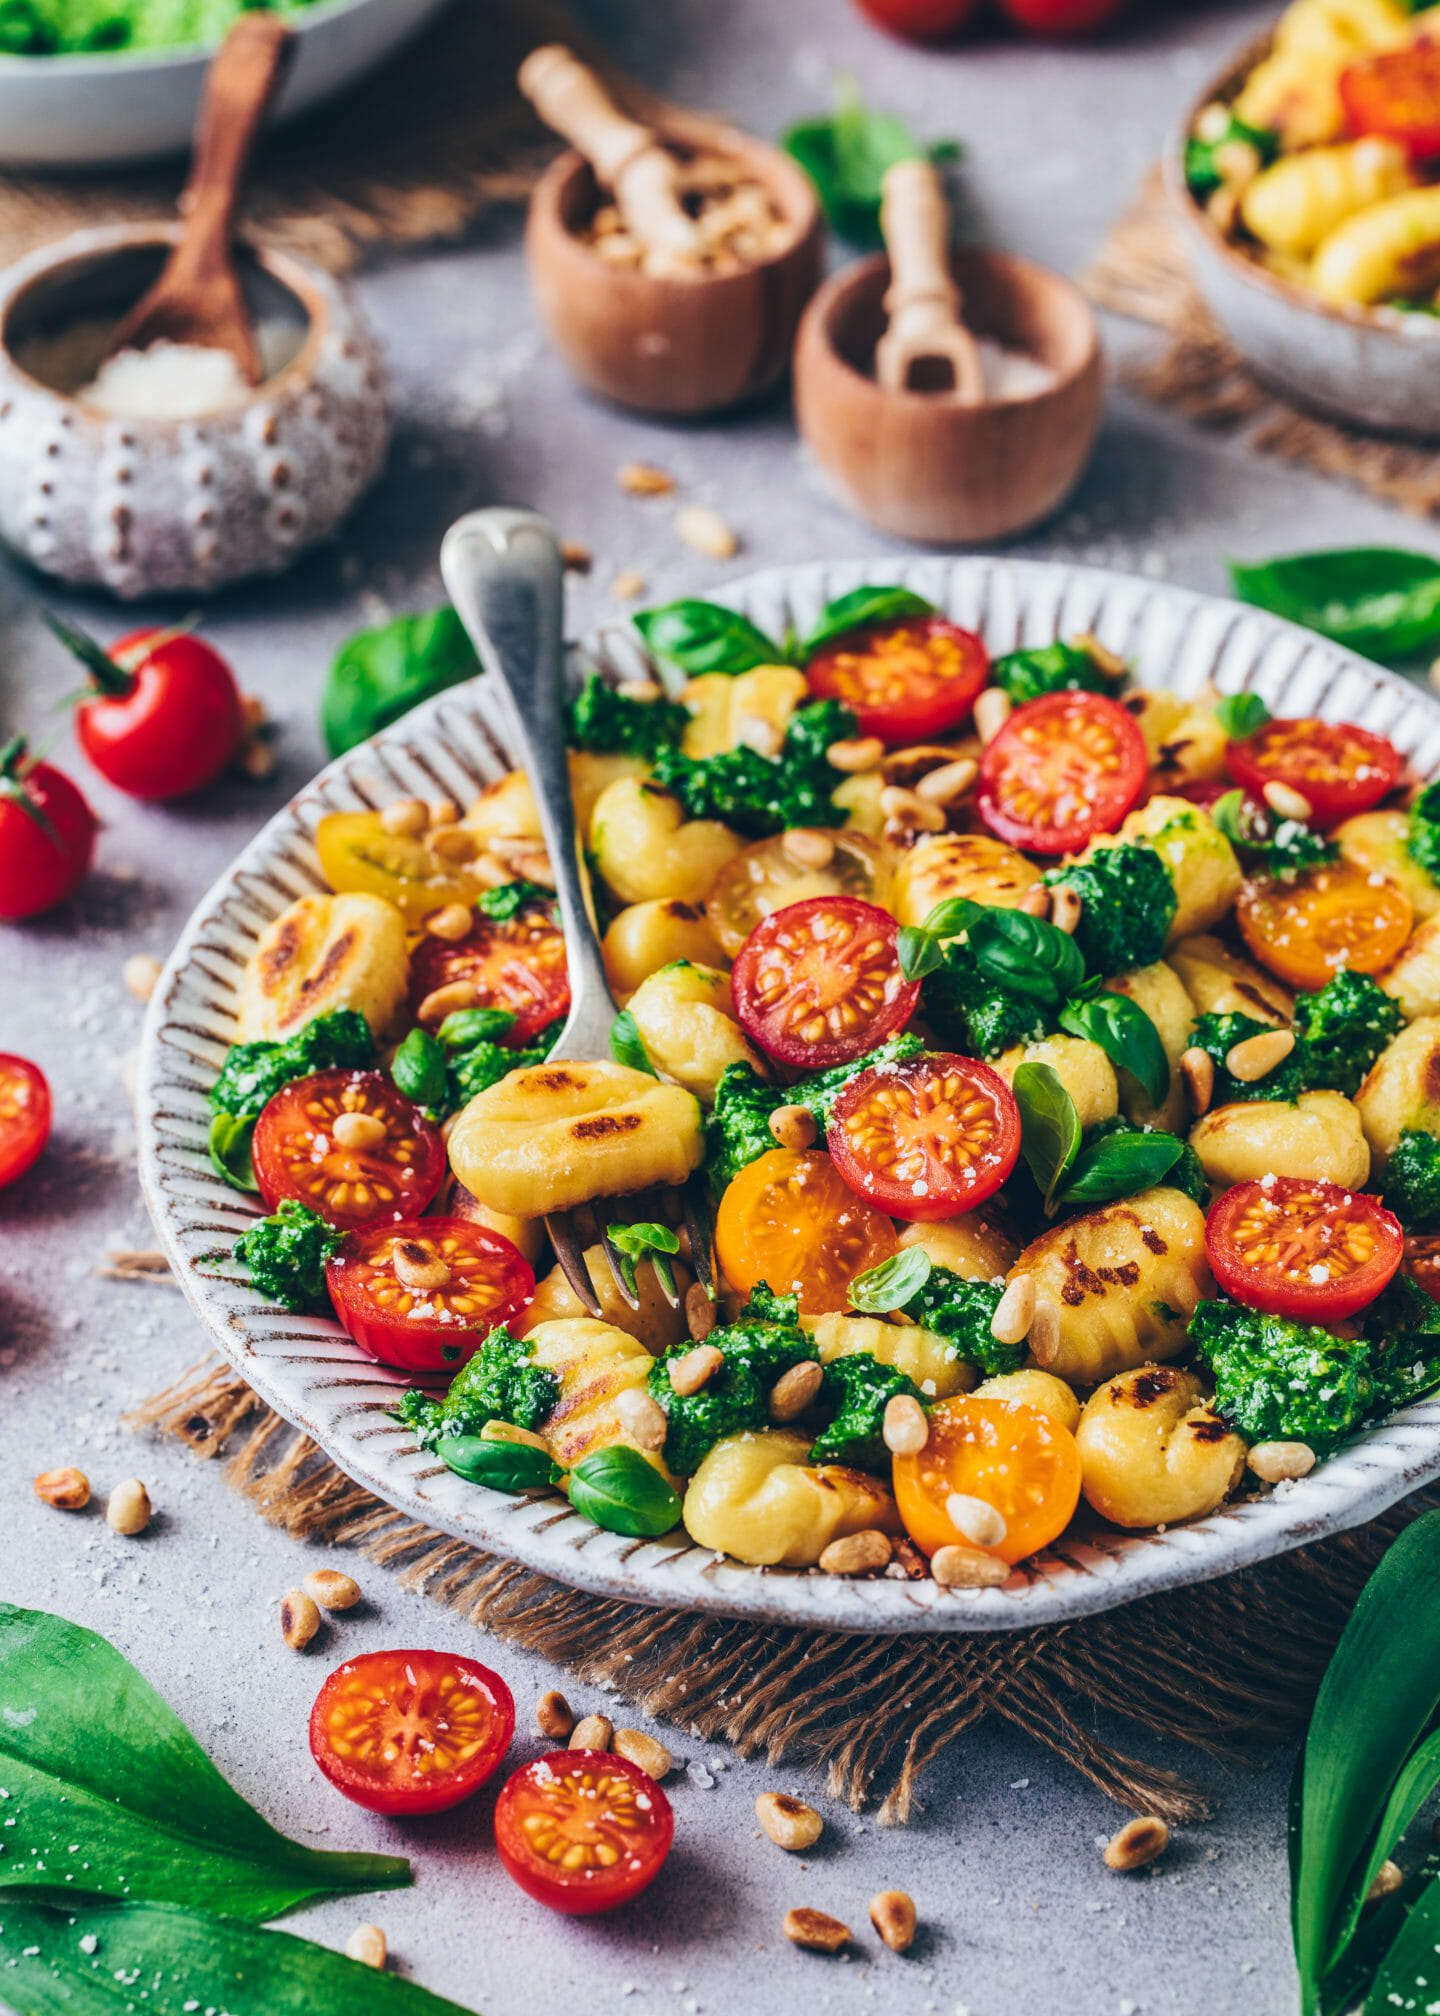 gnocchi with wild garlic, pesto, tomatoes, vegan parmesan cheese, and basil (food photography)